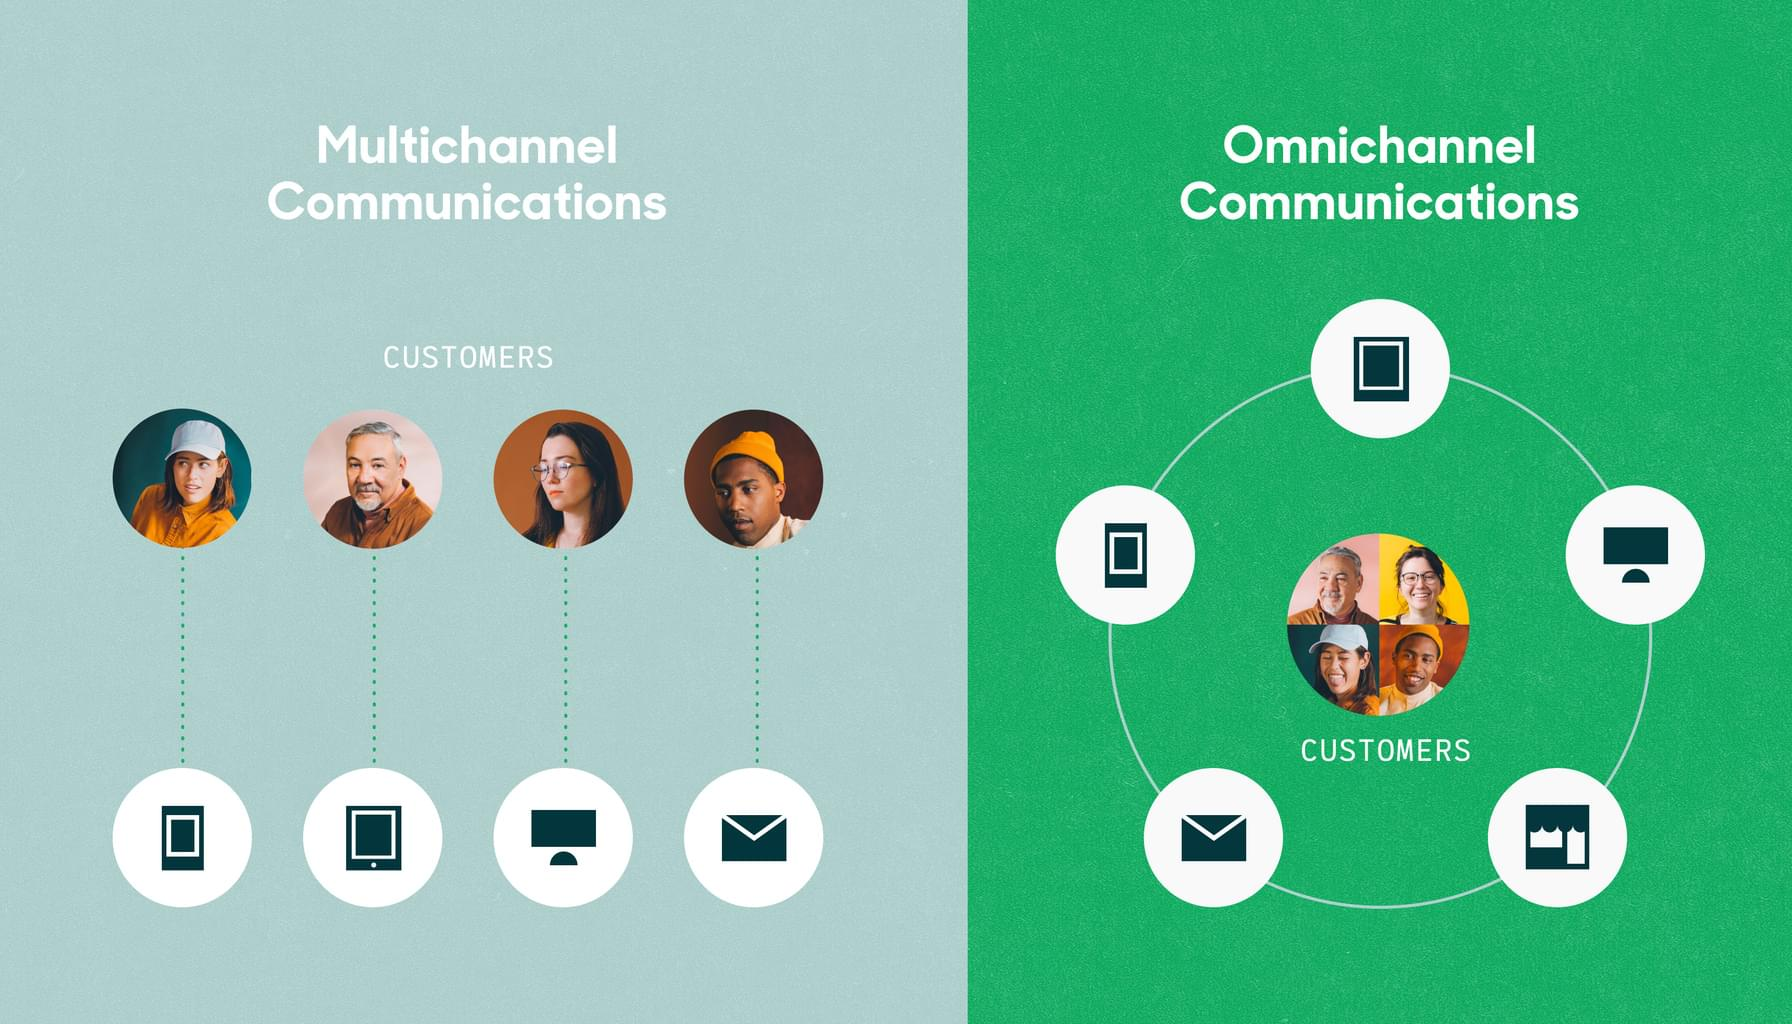 Omnichannel customer service and multichannel are different. Omnichannel is better.